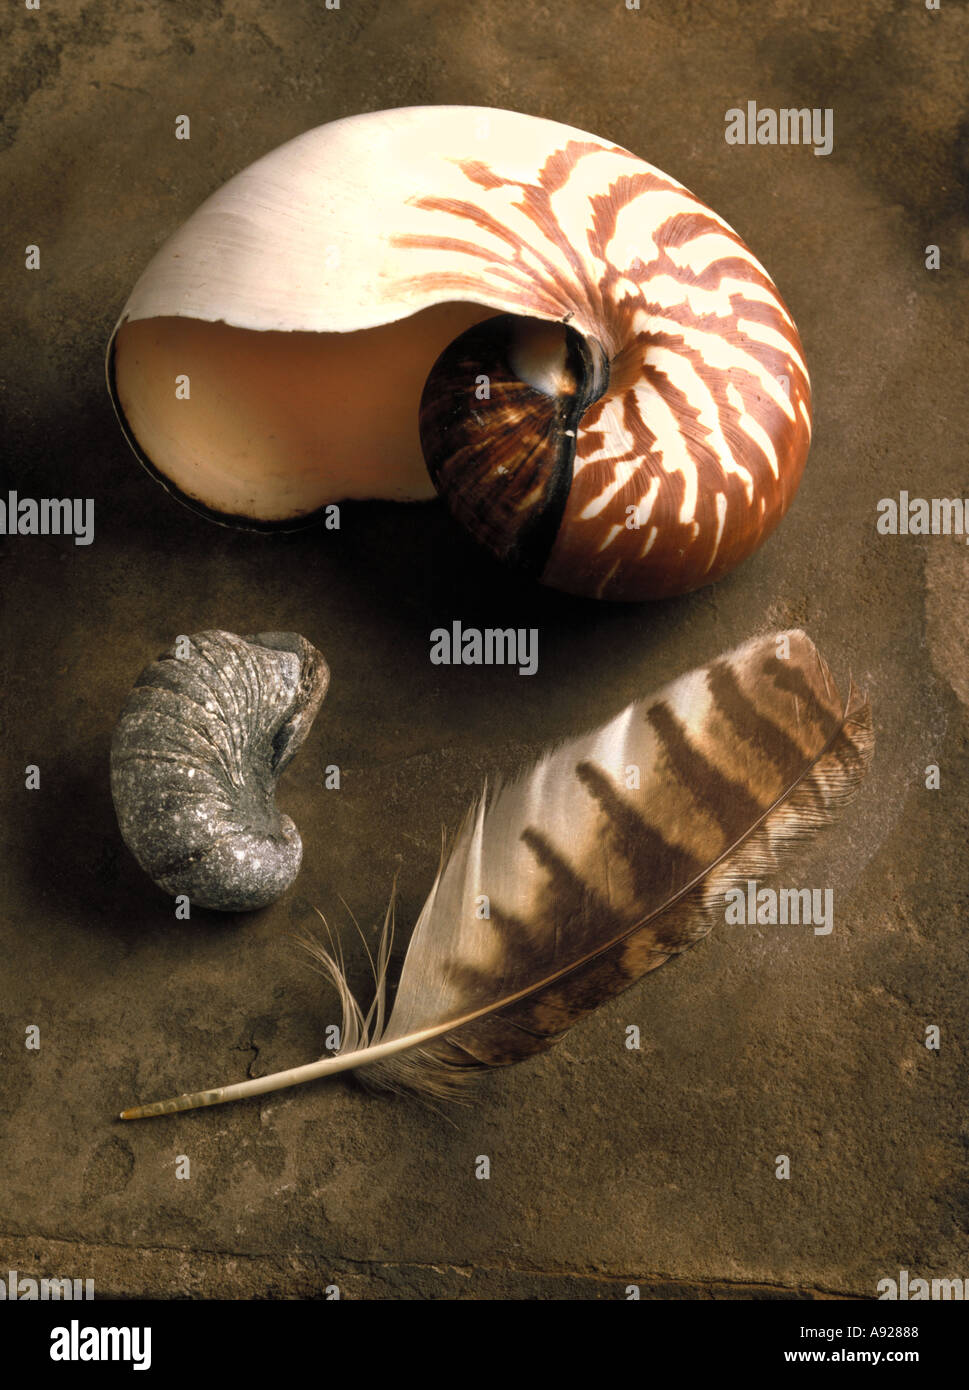 Nautilus Shell, fossil and feather still life. Meant to represent patterns in nature and evolutionary time. NATURAL SELECTION - Stock Image